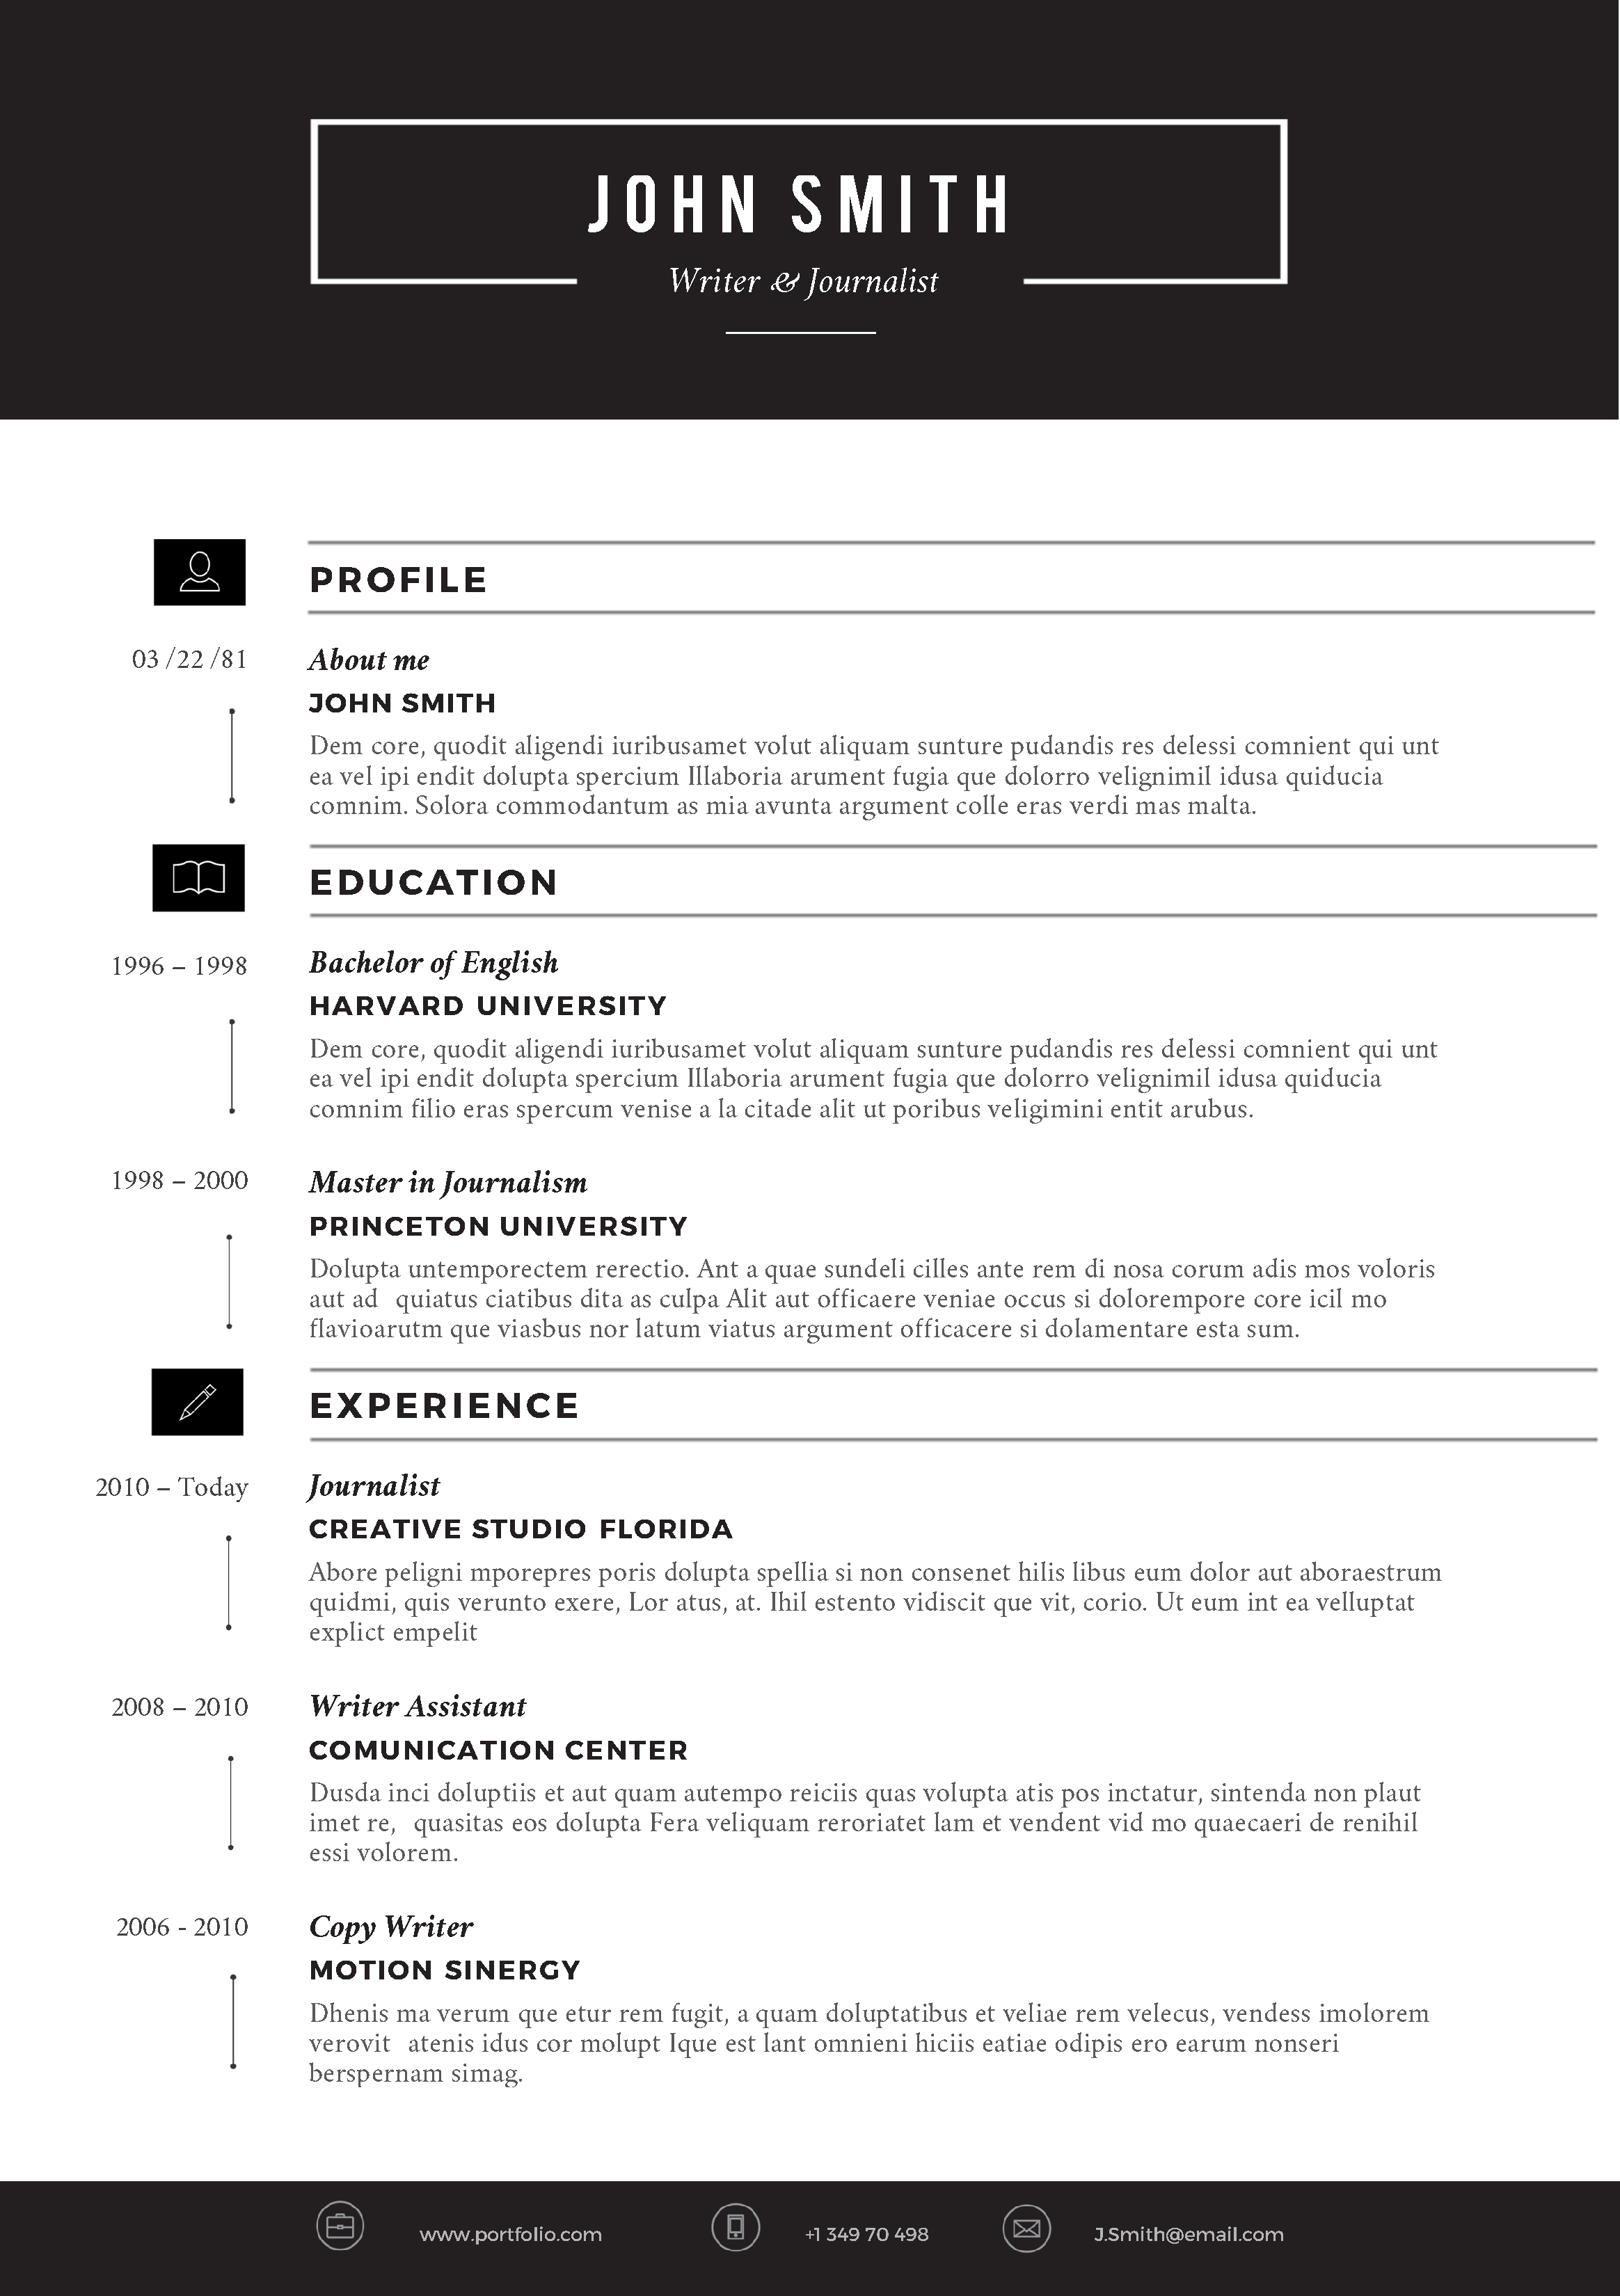 cleaning business resume. cleaning business owner resume sample, Invoice templates